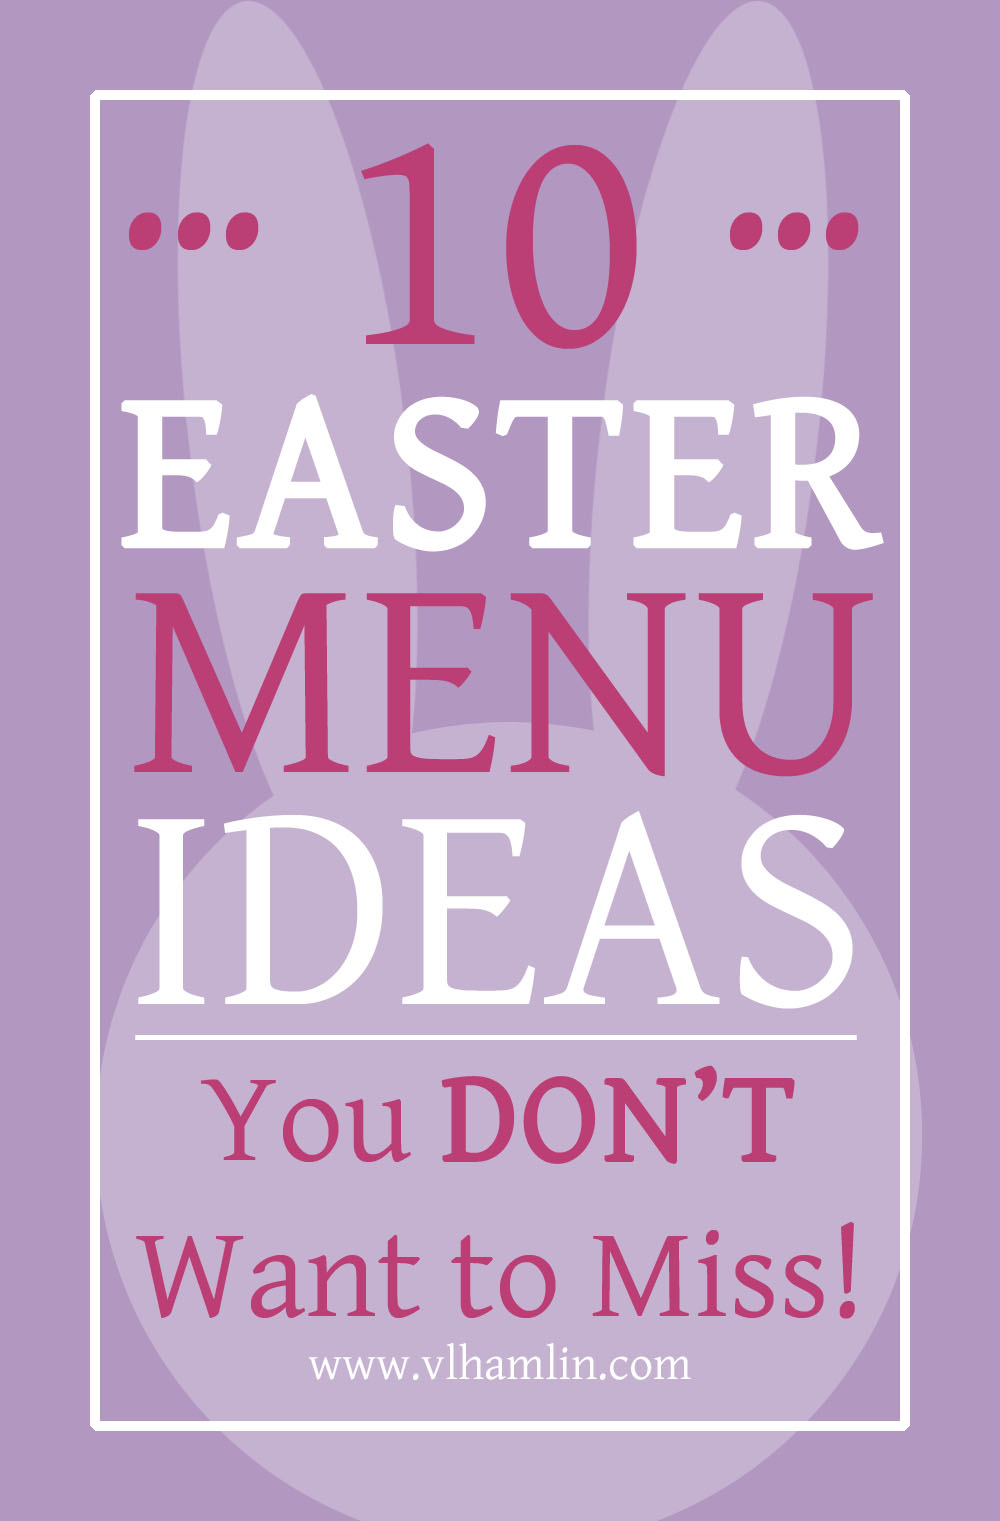 10 EASTER MENU IDEAS YOU DONT WANT TO MISS